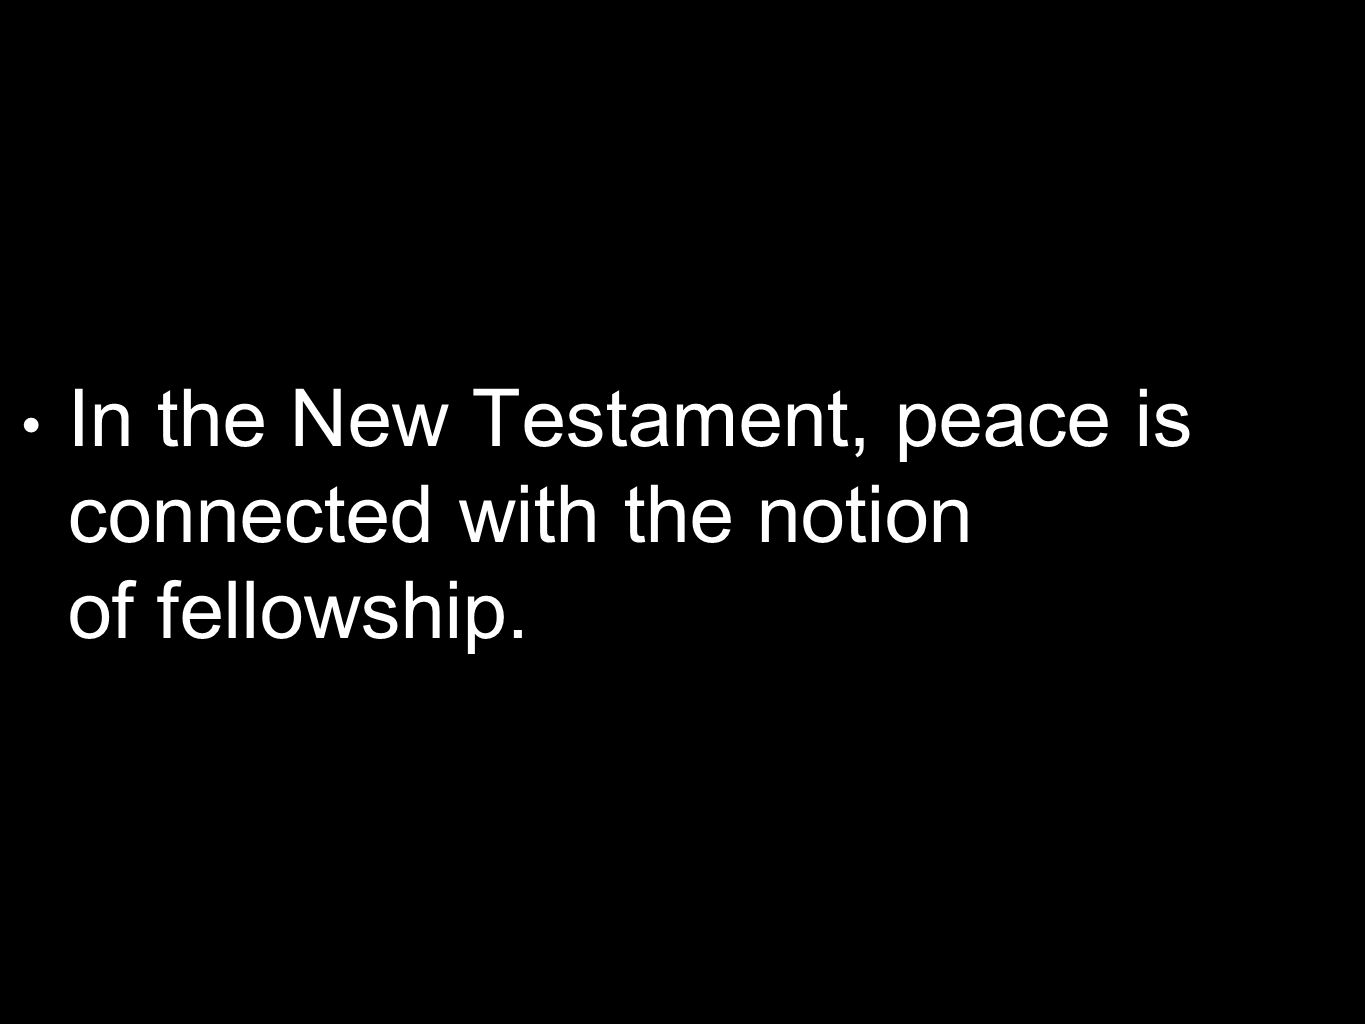 In the New Testament, peace is connected with the notion of fellowship.